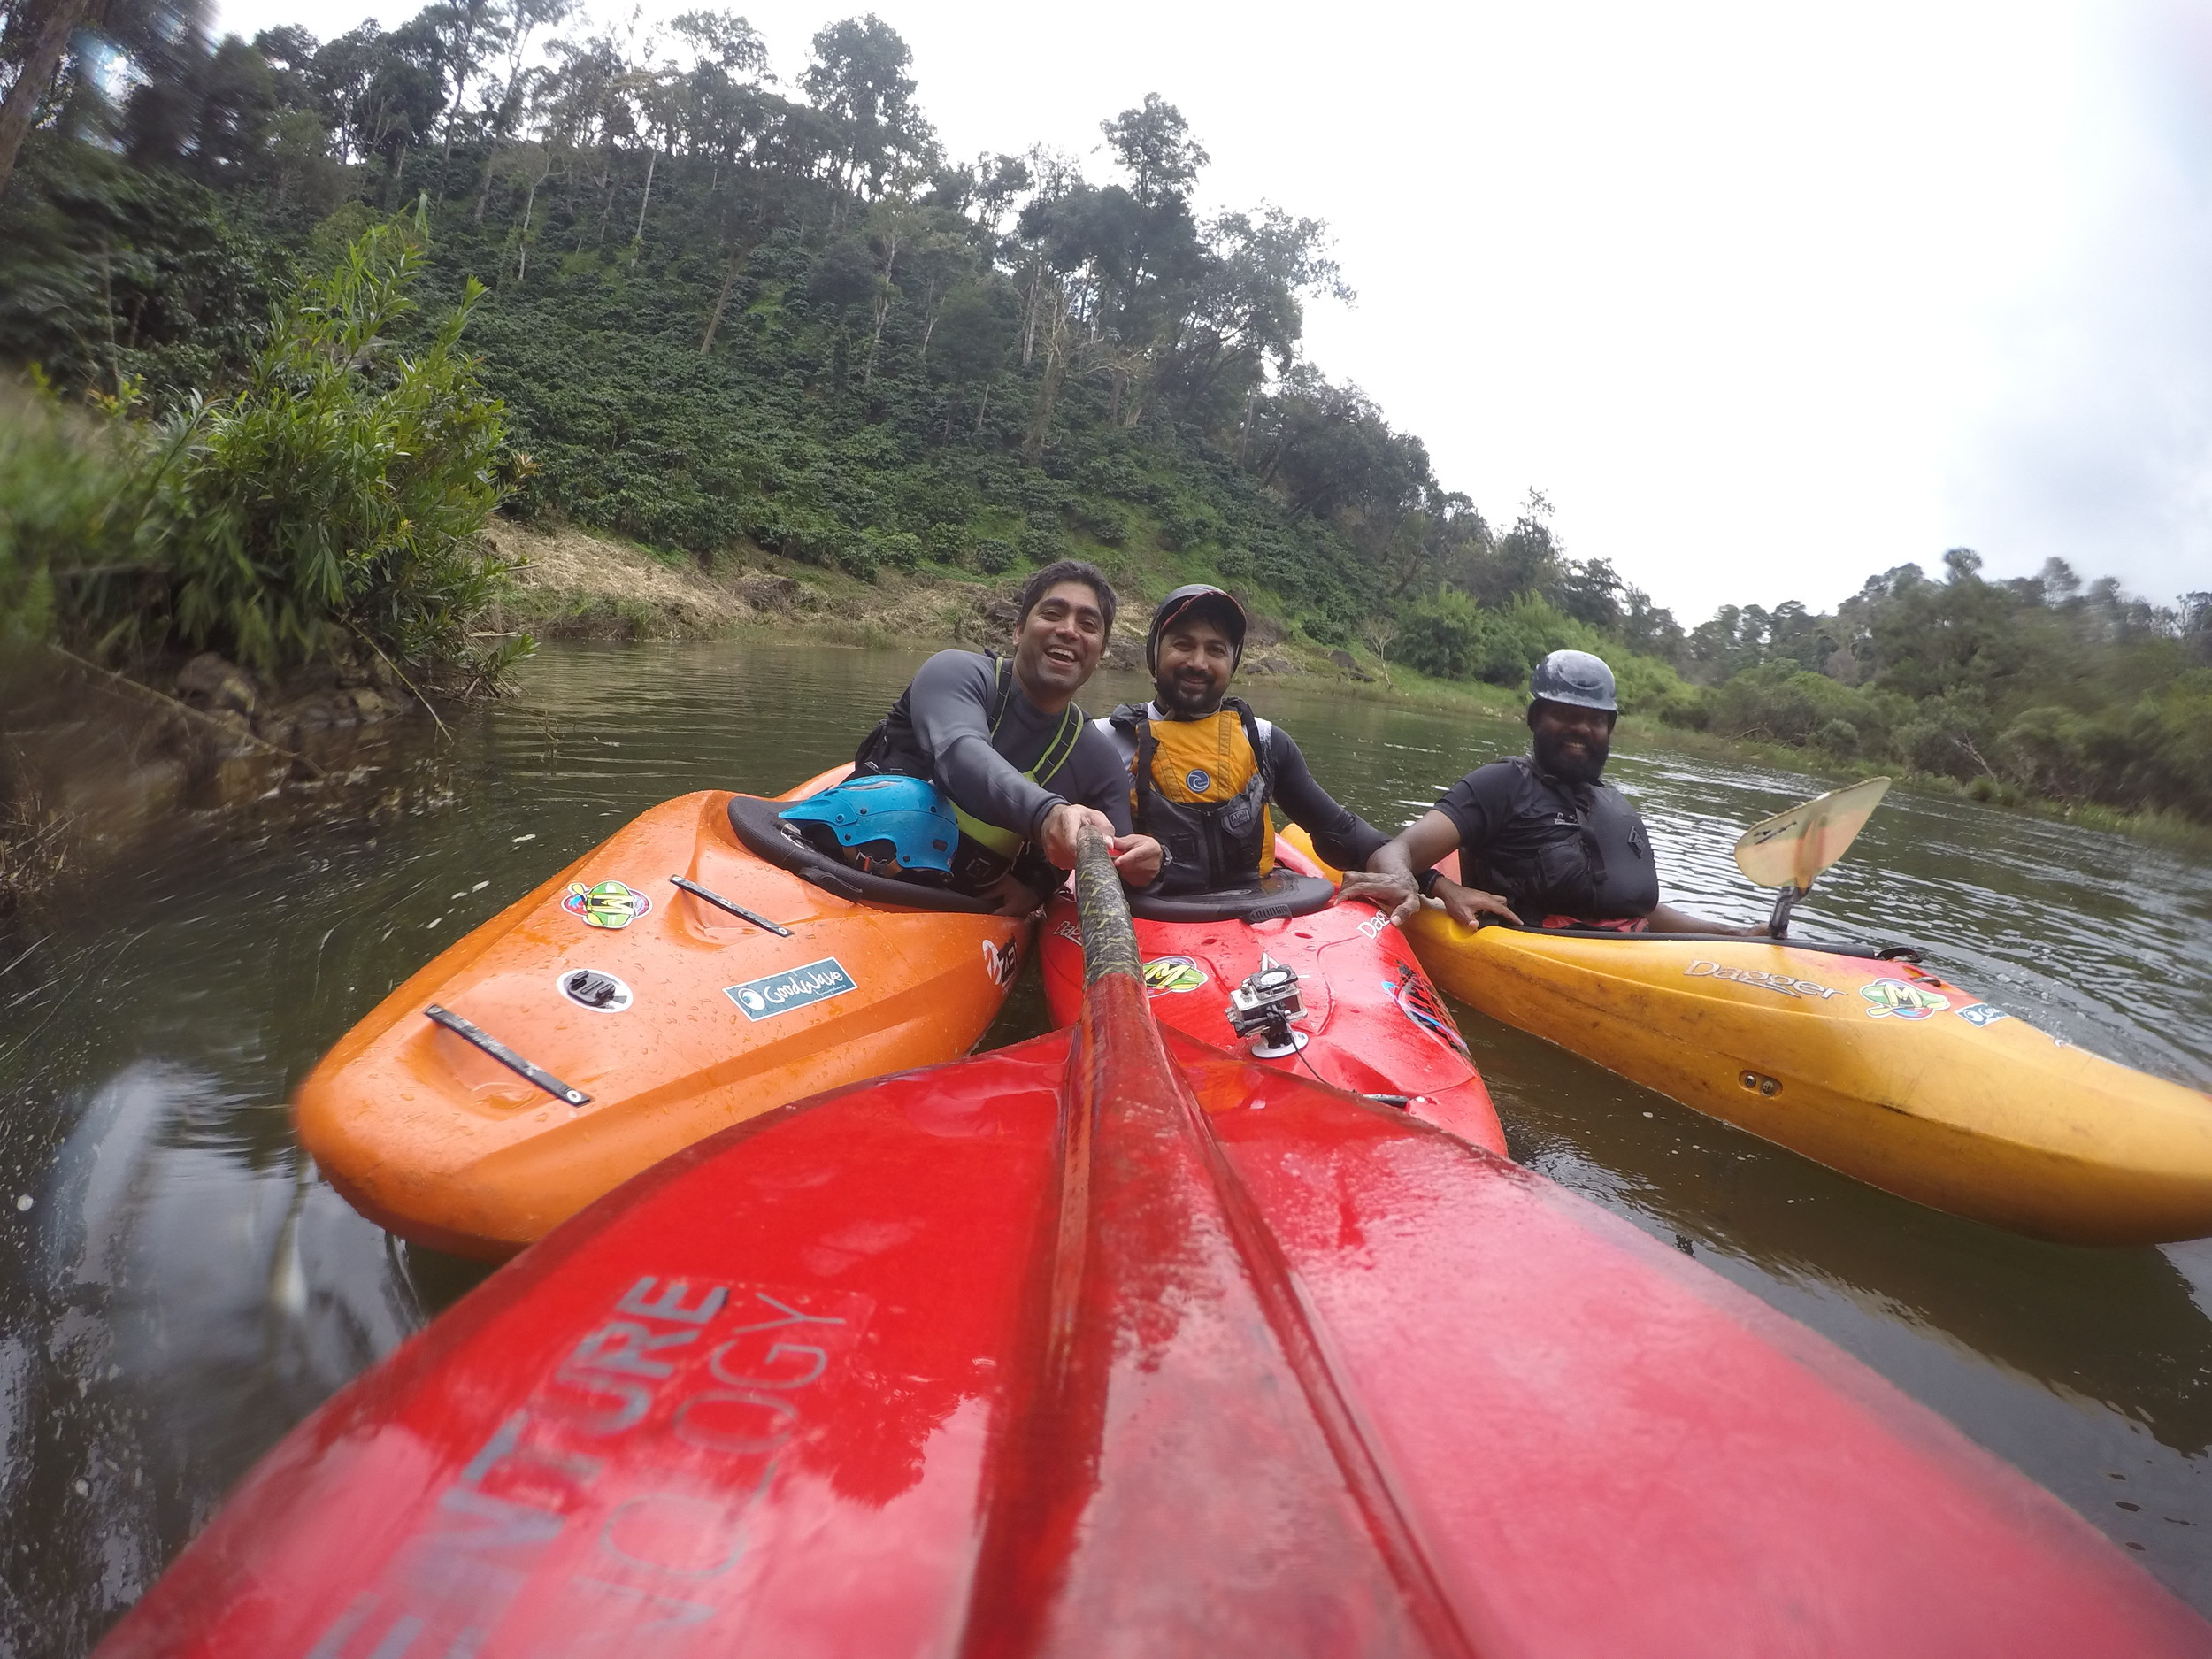 The trio taking a quick snap before heading downstream